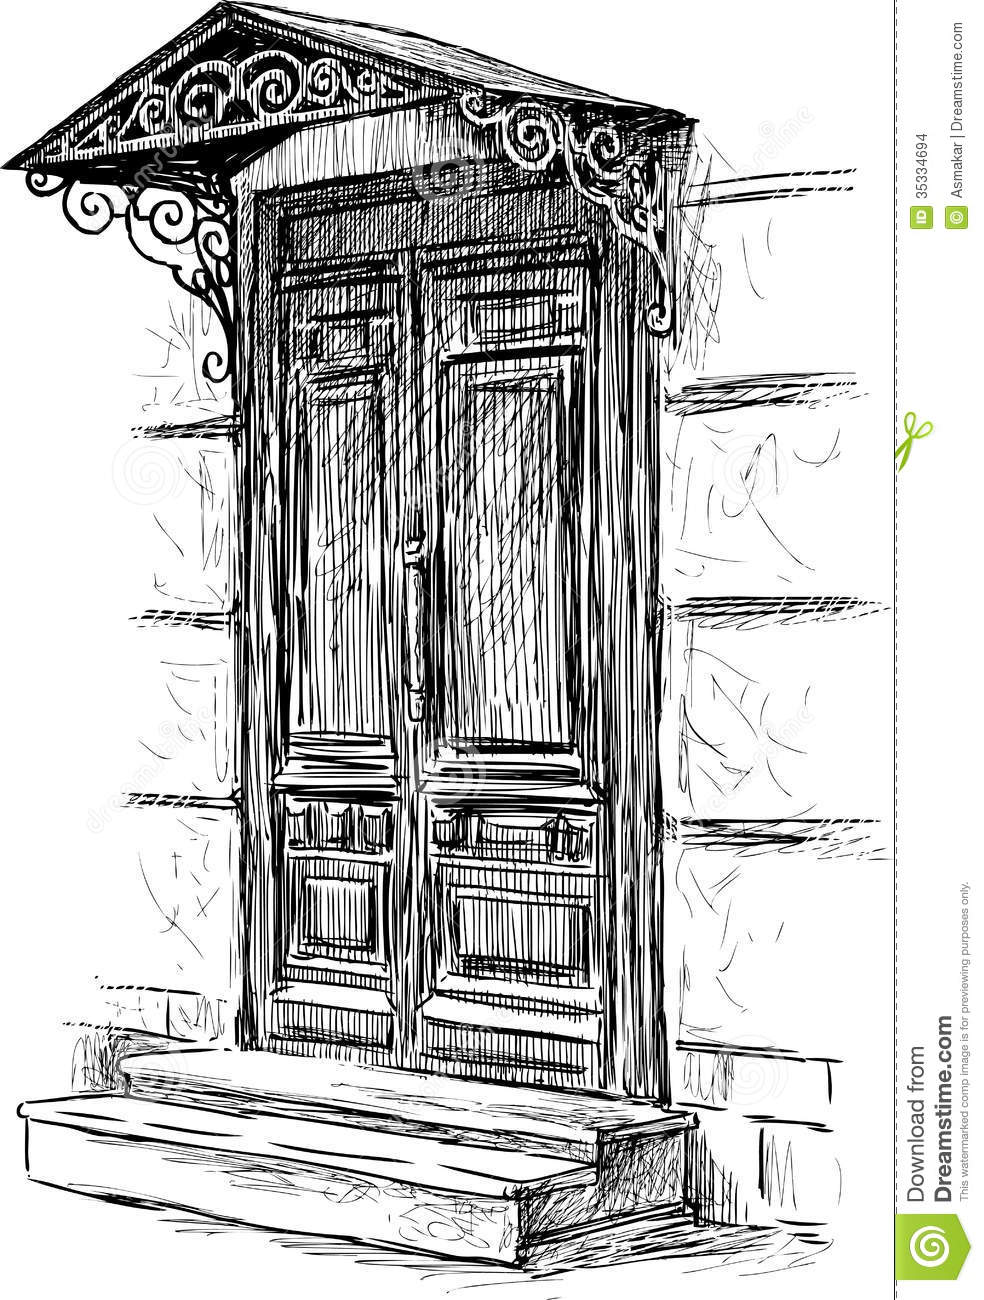 porte de maison de ville illustration de vecteur image du dessin 35334694. Black Bedroom Furniture Sets. Home Design Ideas